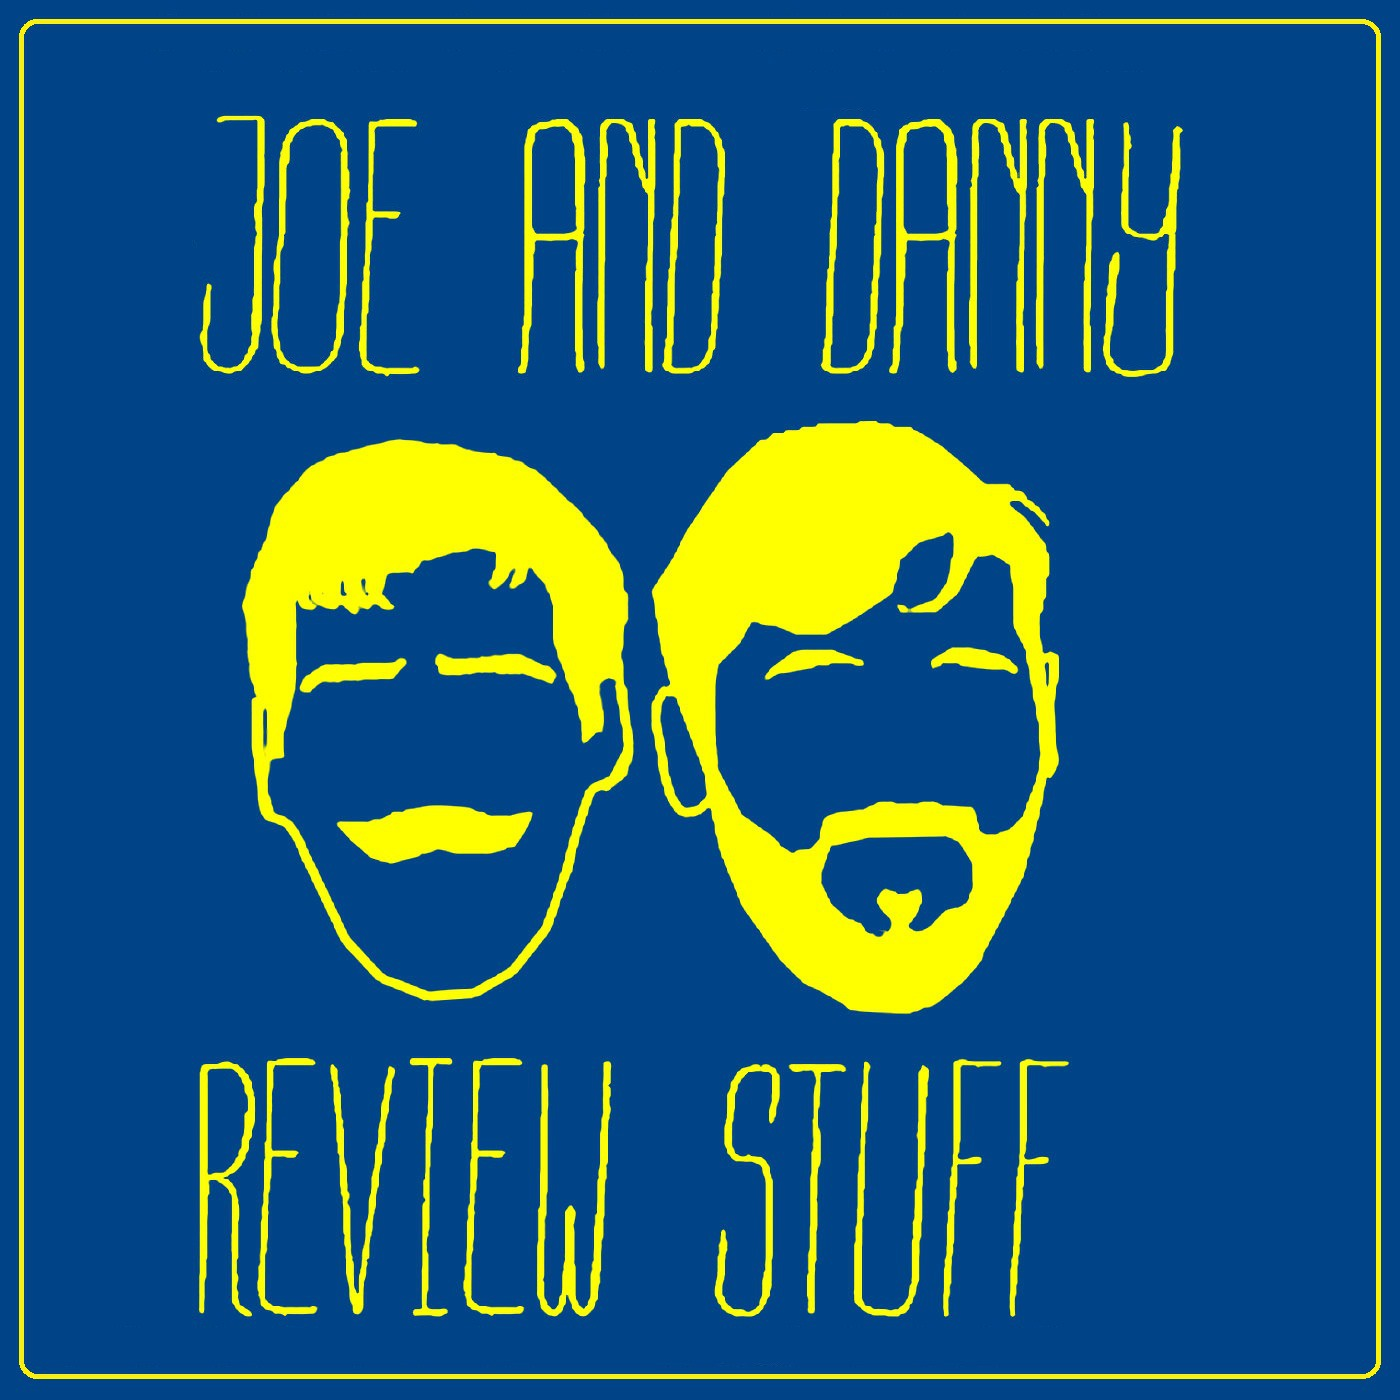 Joe and Danny Review Stuff